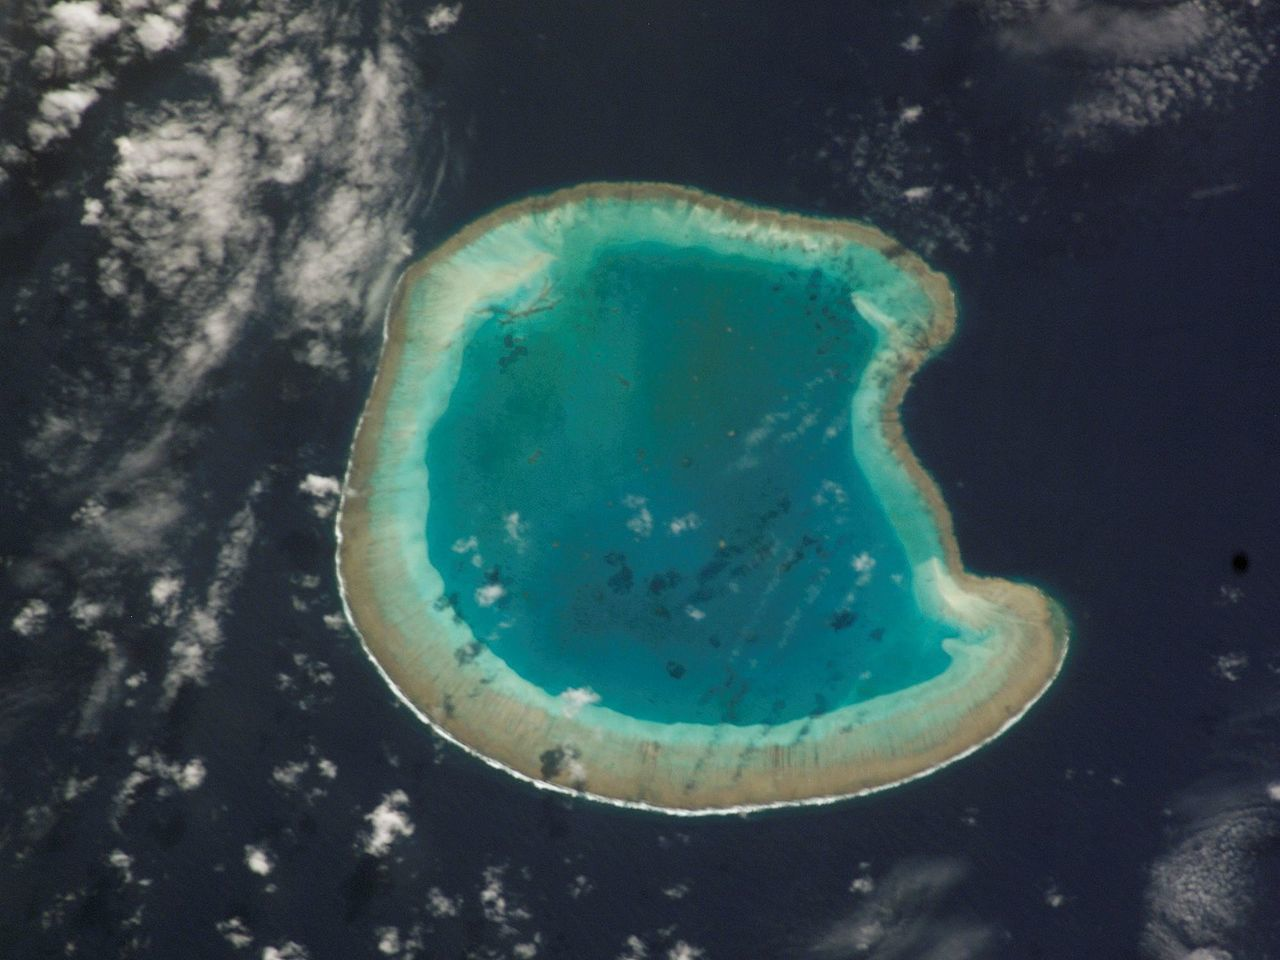 atoll de Bassas do India (îles Eparses)- Par NASA — http://eol.jsc.nasa.gov/scripts/sseop/photo.pl?mission=ISS005&roll=E&frame=7870, Domaine public, https://commons.wikimedia.org/w/index.php?curid=1402929